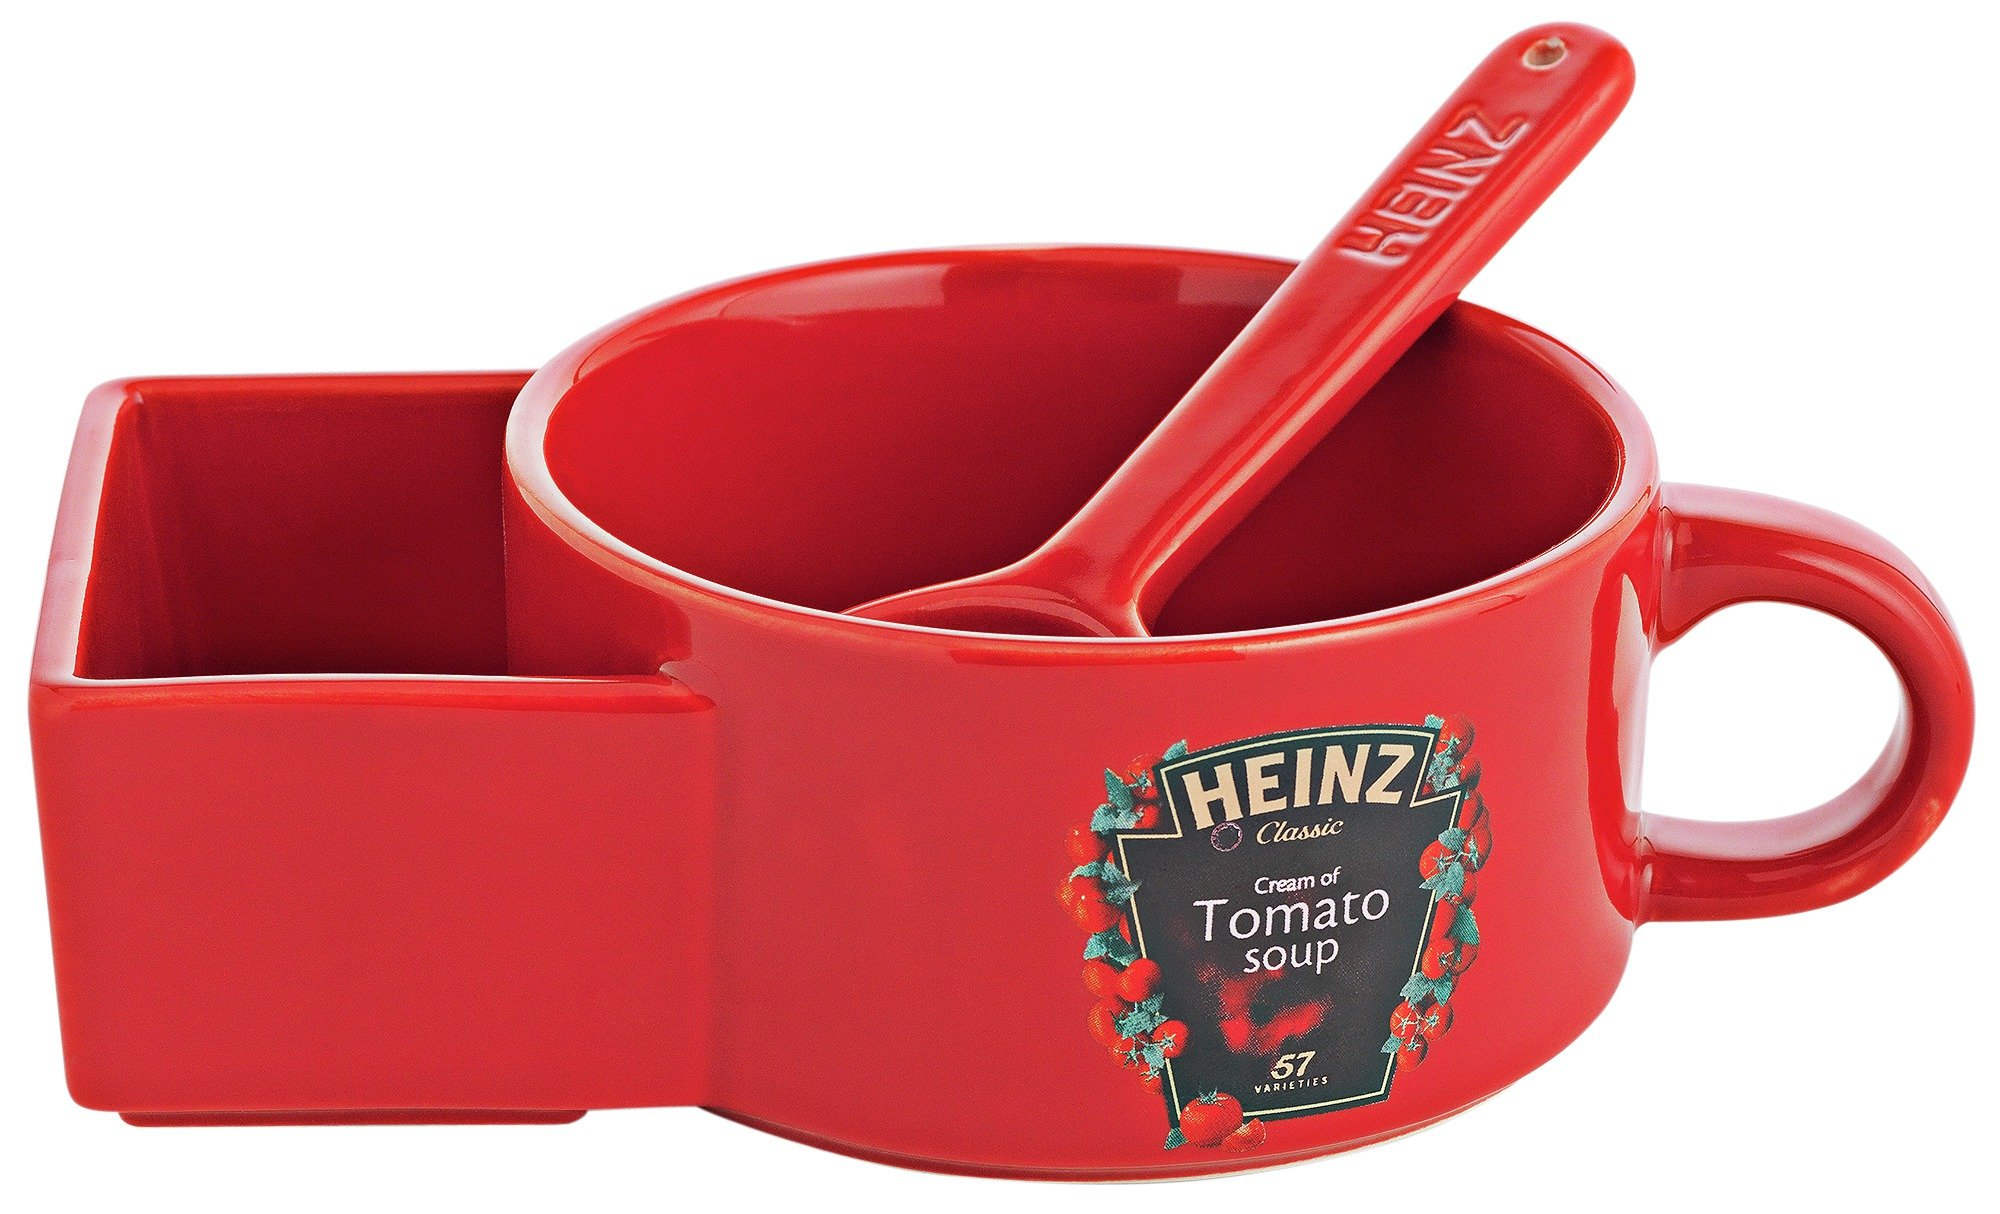 Heinz Soup Bowl with Bread Holder and Spoon